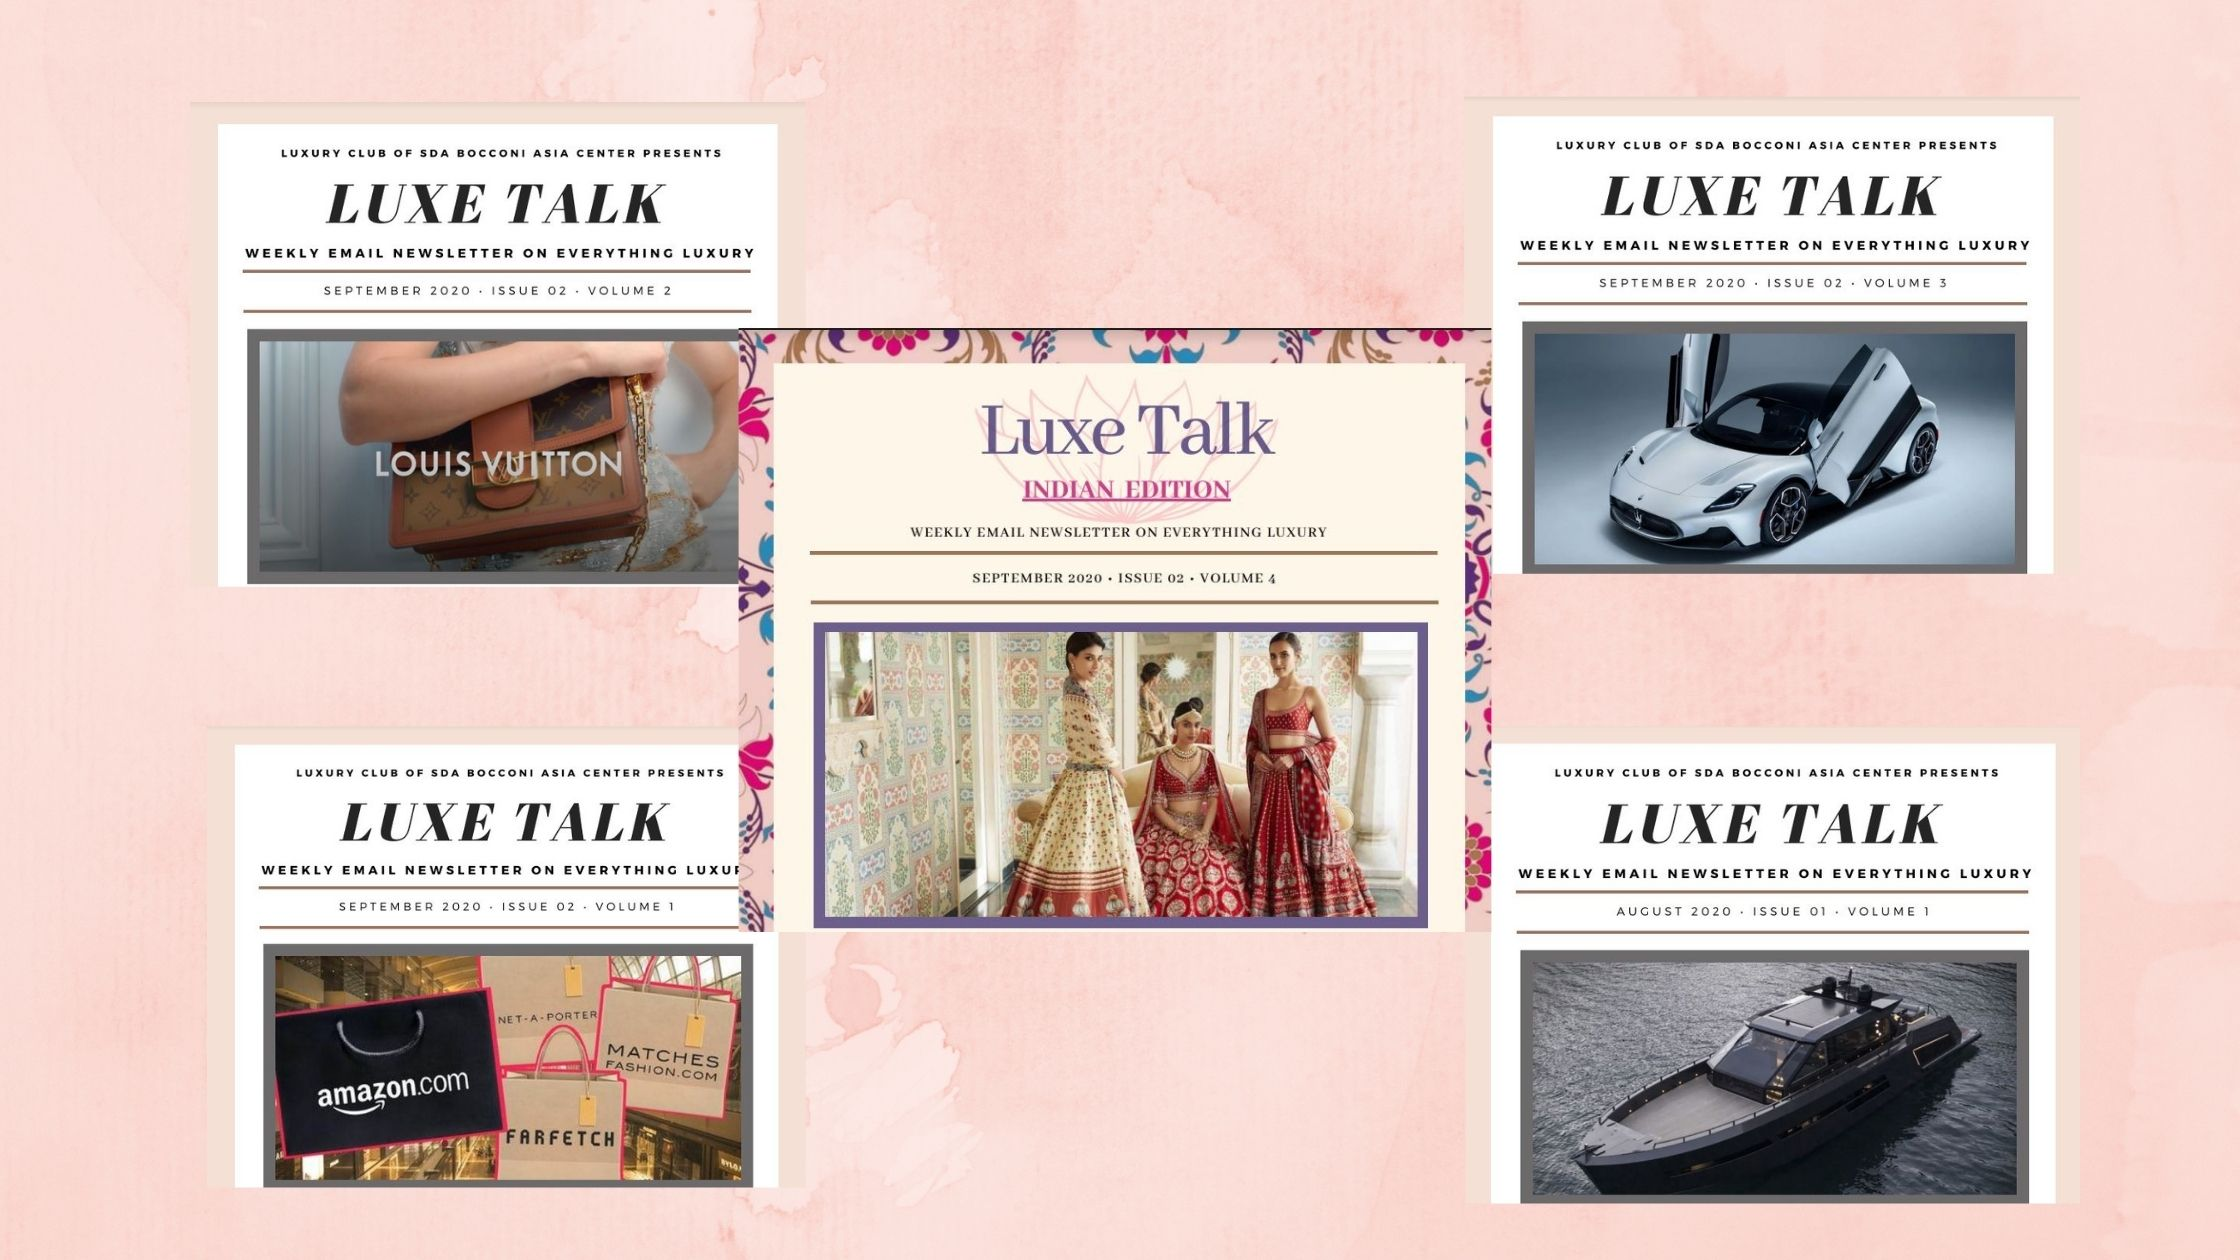 Luxe Talk – Newsletter by Luxury Club